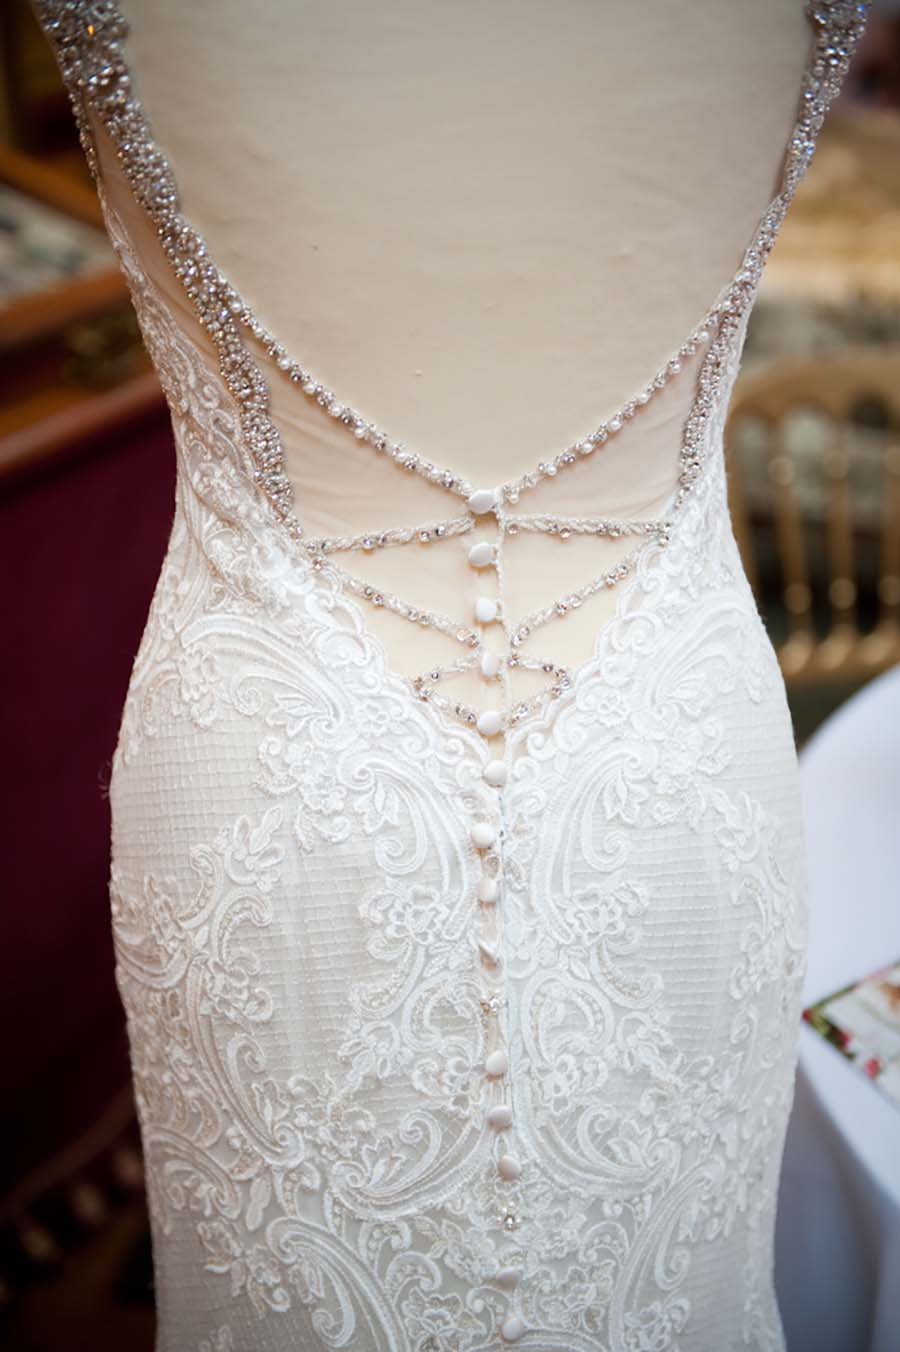 Buckinghams-at-belvoir-castle-wedding-fair-rachael-connerton-photography-33